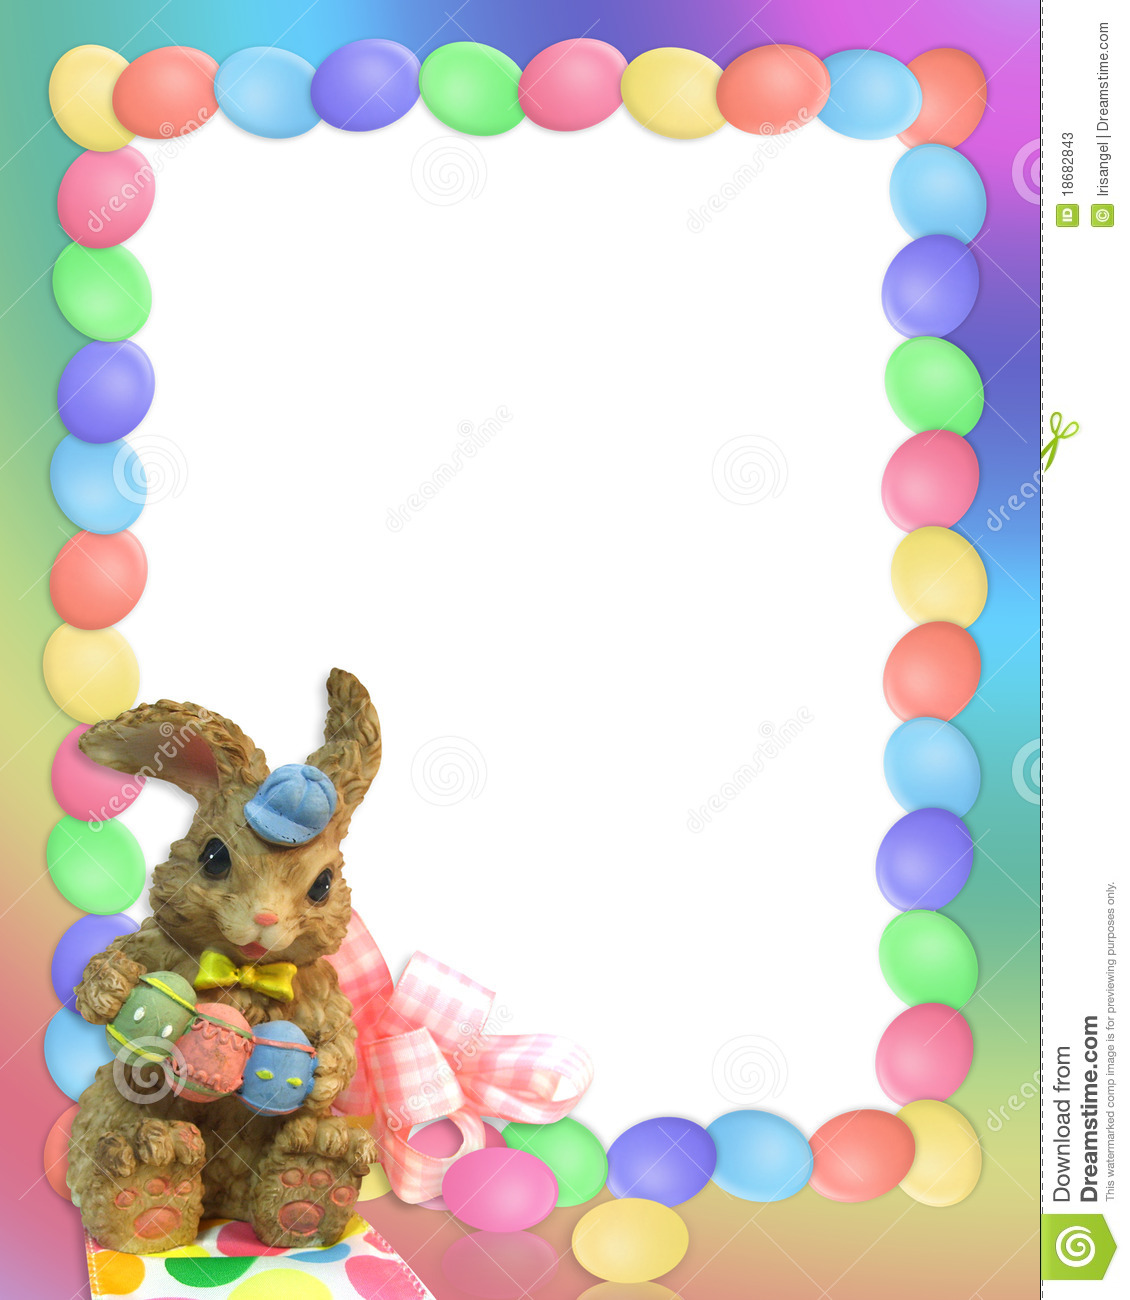 ... , stationery or holiday background with copy space and cute bunny